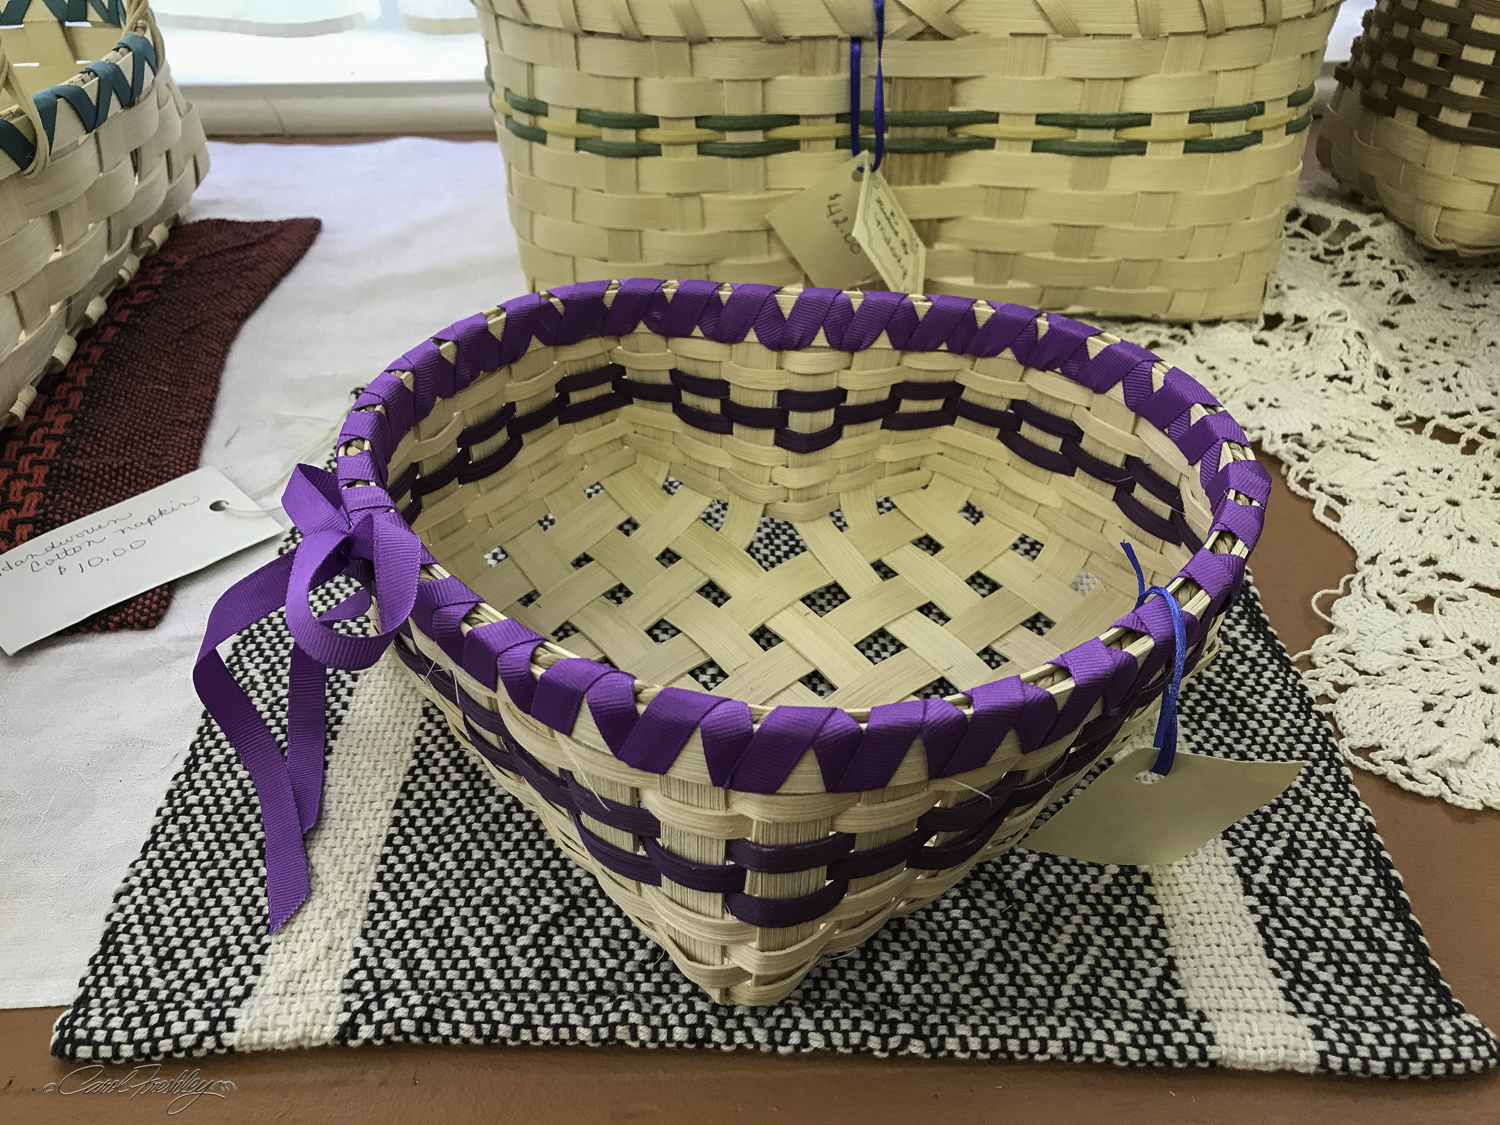 Basket weaving was probably not done this way a hundred years ago. But, the craftswoman noted that crafts have always evolved to meet current need and 'market demand'. So true.